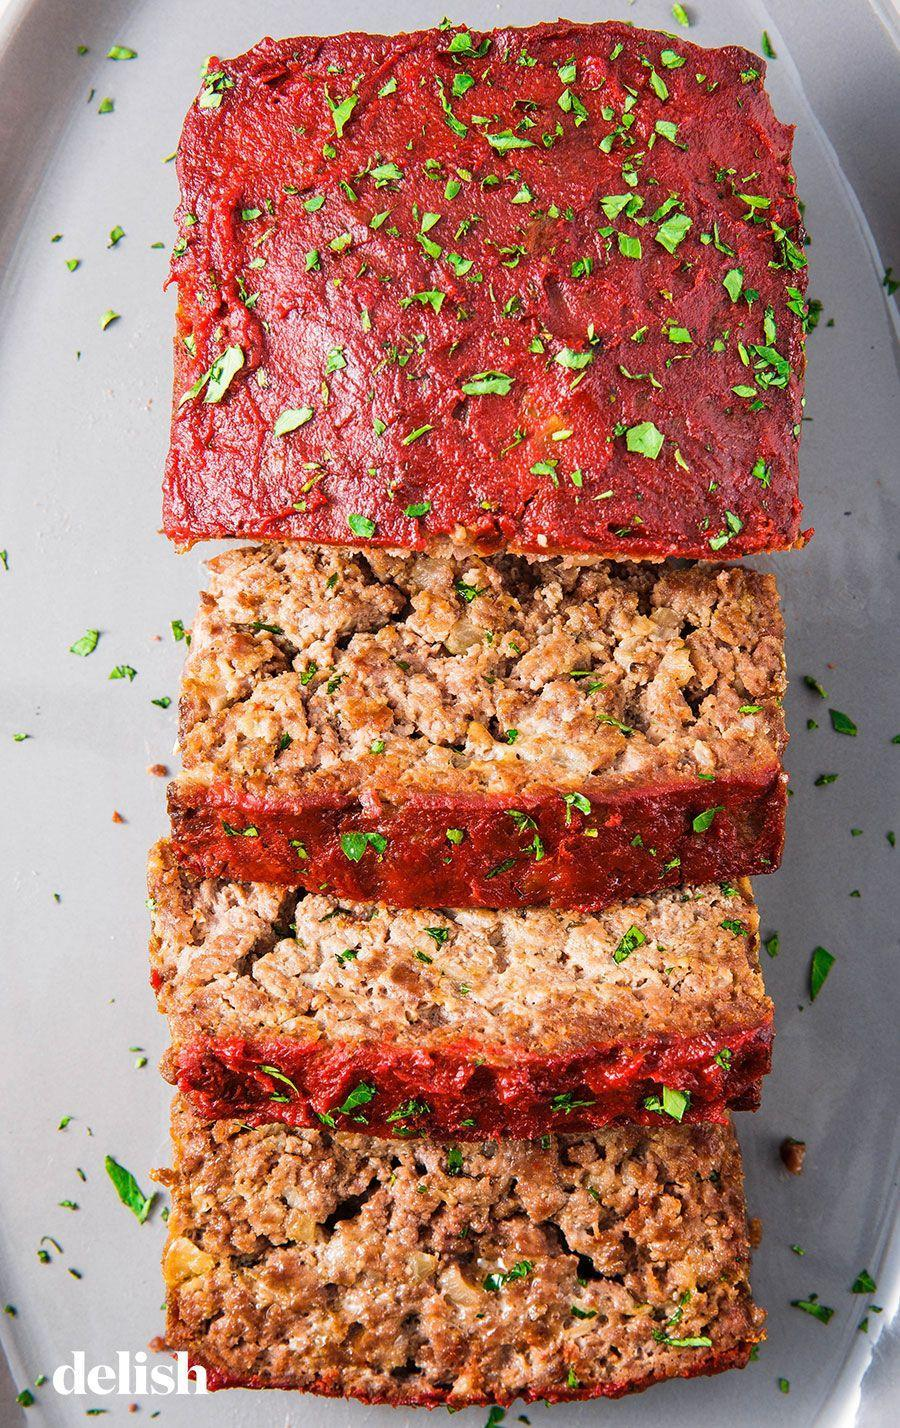 """<p>This healthy meatloaf will carry you through healthy January.</p><p>Get the recipe from <a href=""""https://www.delish.com/cooking/recipe-ideas/a25363131/paleo-meatloaf-recipe/"""" rel=""""nofollow noopener"""" target=""""_blank"""" data-ylk=""""slk:Delish"""" class=""""link rapid-noclick-resp"""">Delish</a>. </p>"""